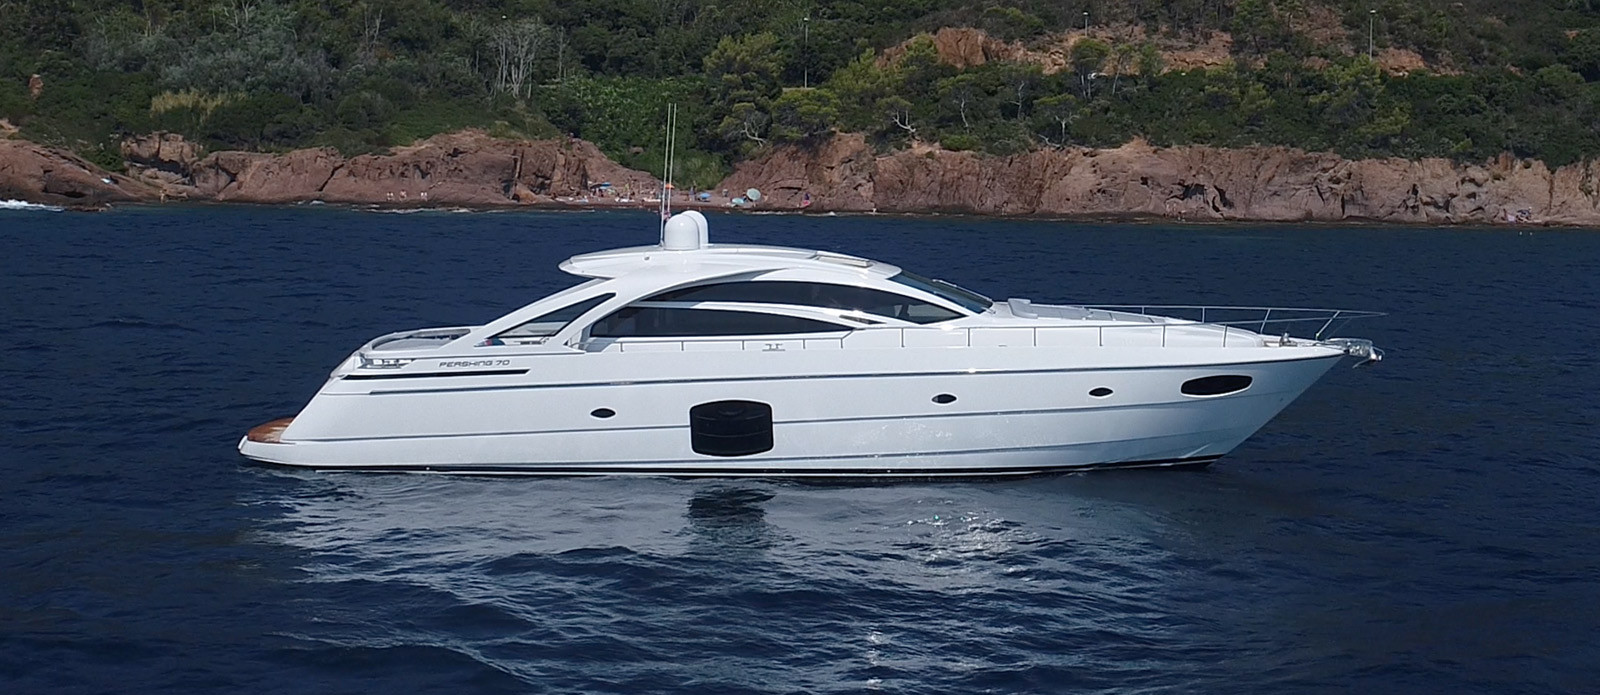 Pershing 70 - Ritmo De Vida - Side-Profile